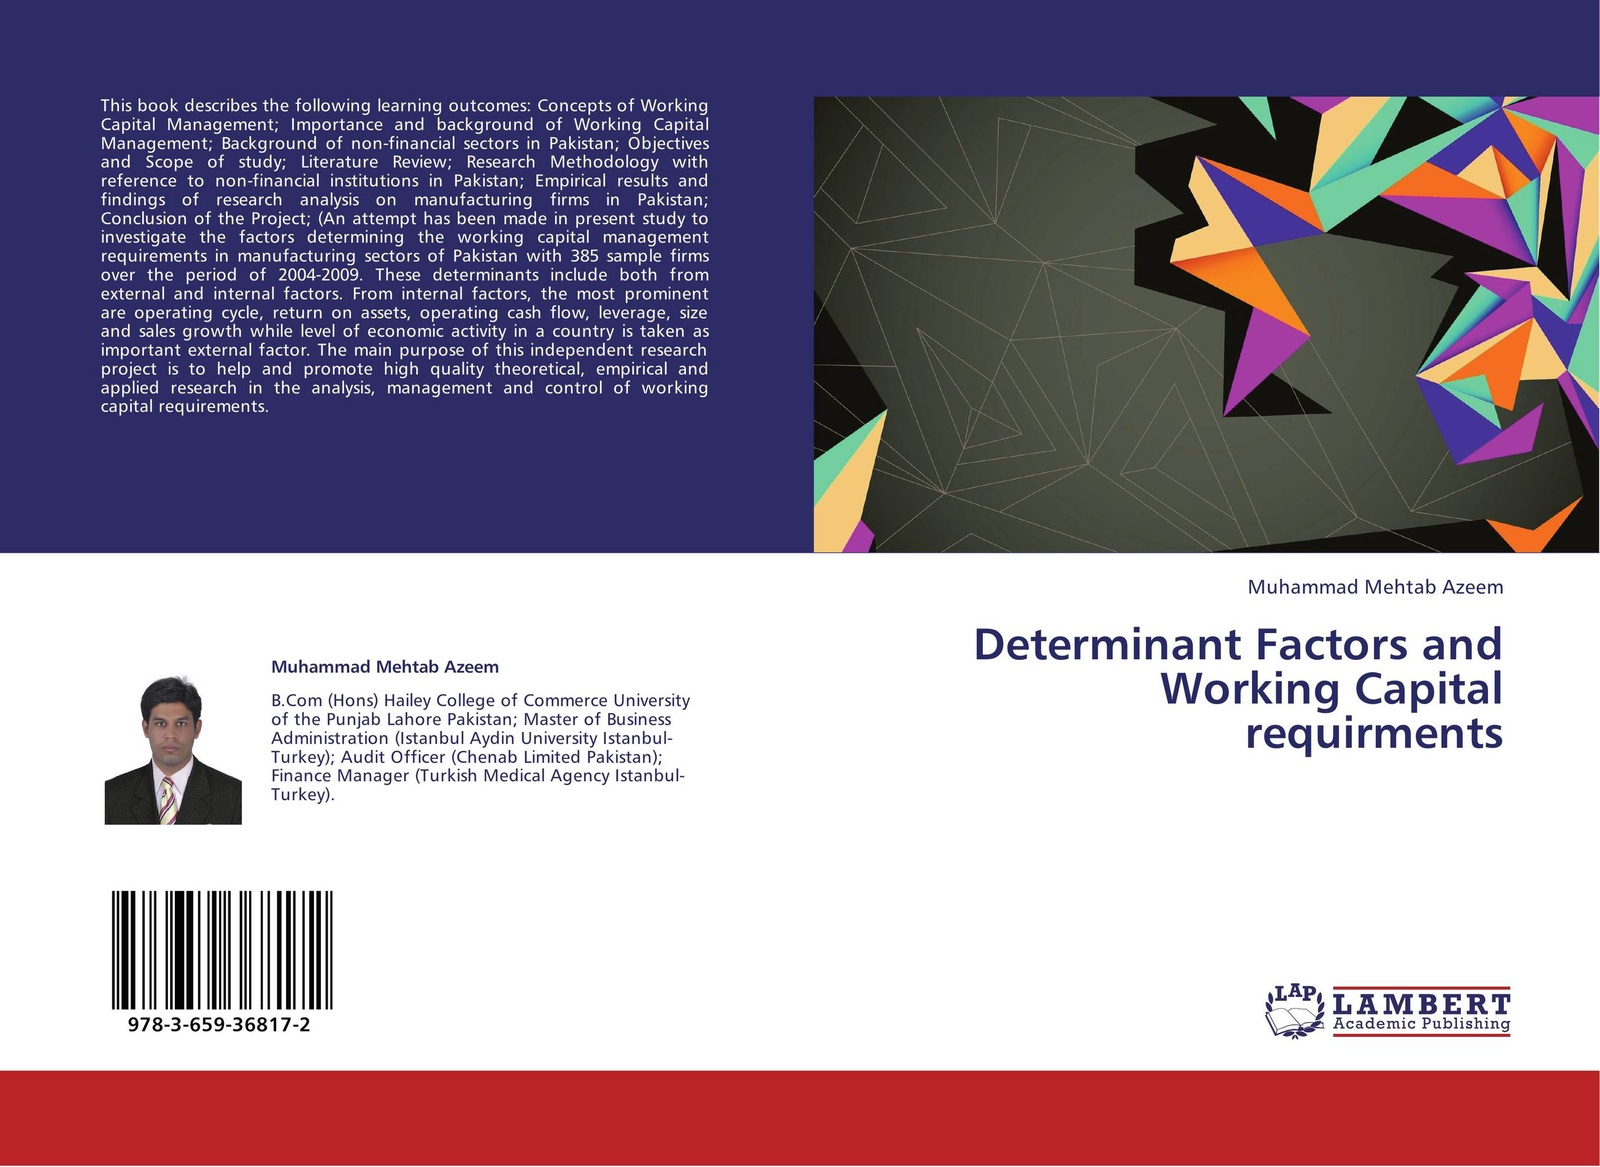 Muhammad Mehtab Azeem Determinant Factors and Working Capital requirments working capital management and profitability